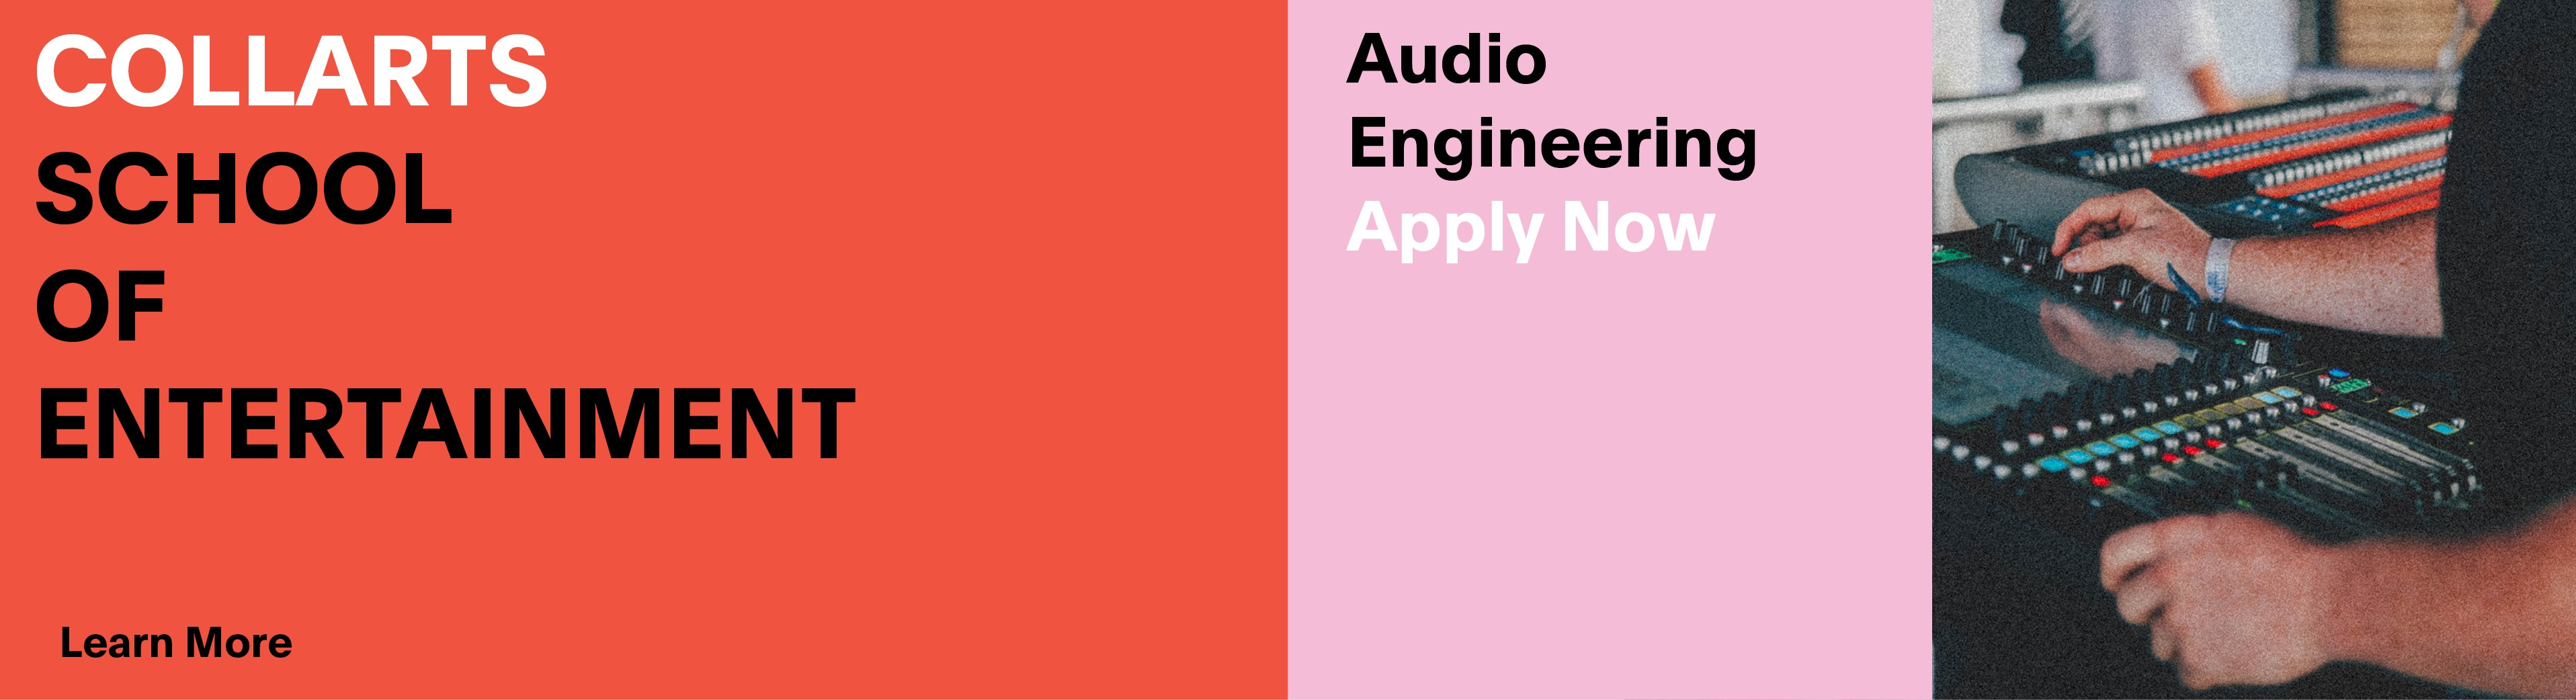 Audio Engineering - Apply Now